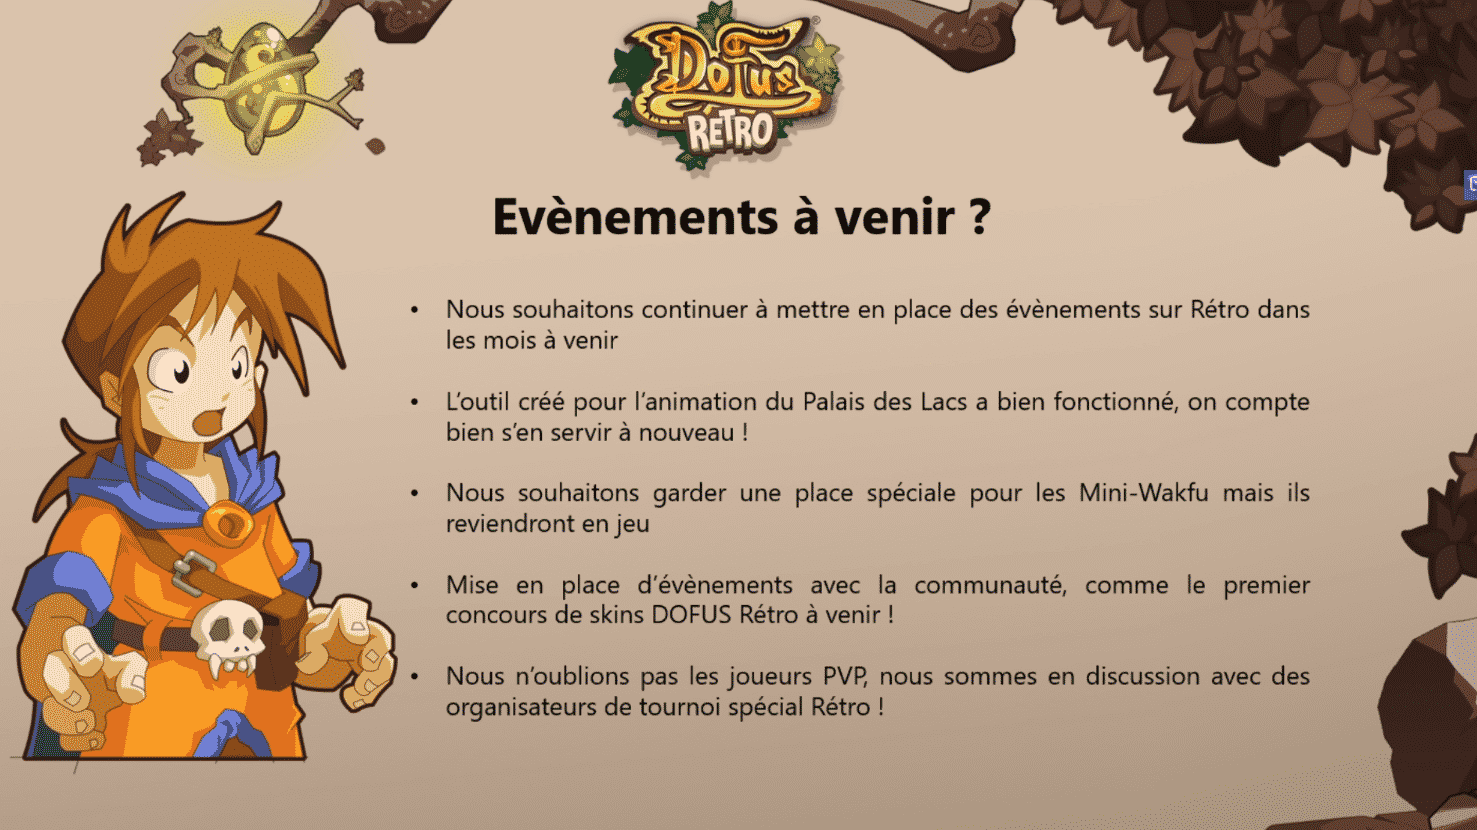 evenements-a-venir-dofus-retro